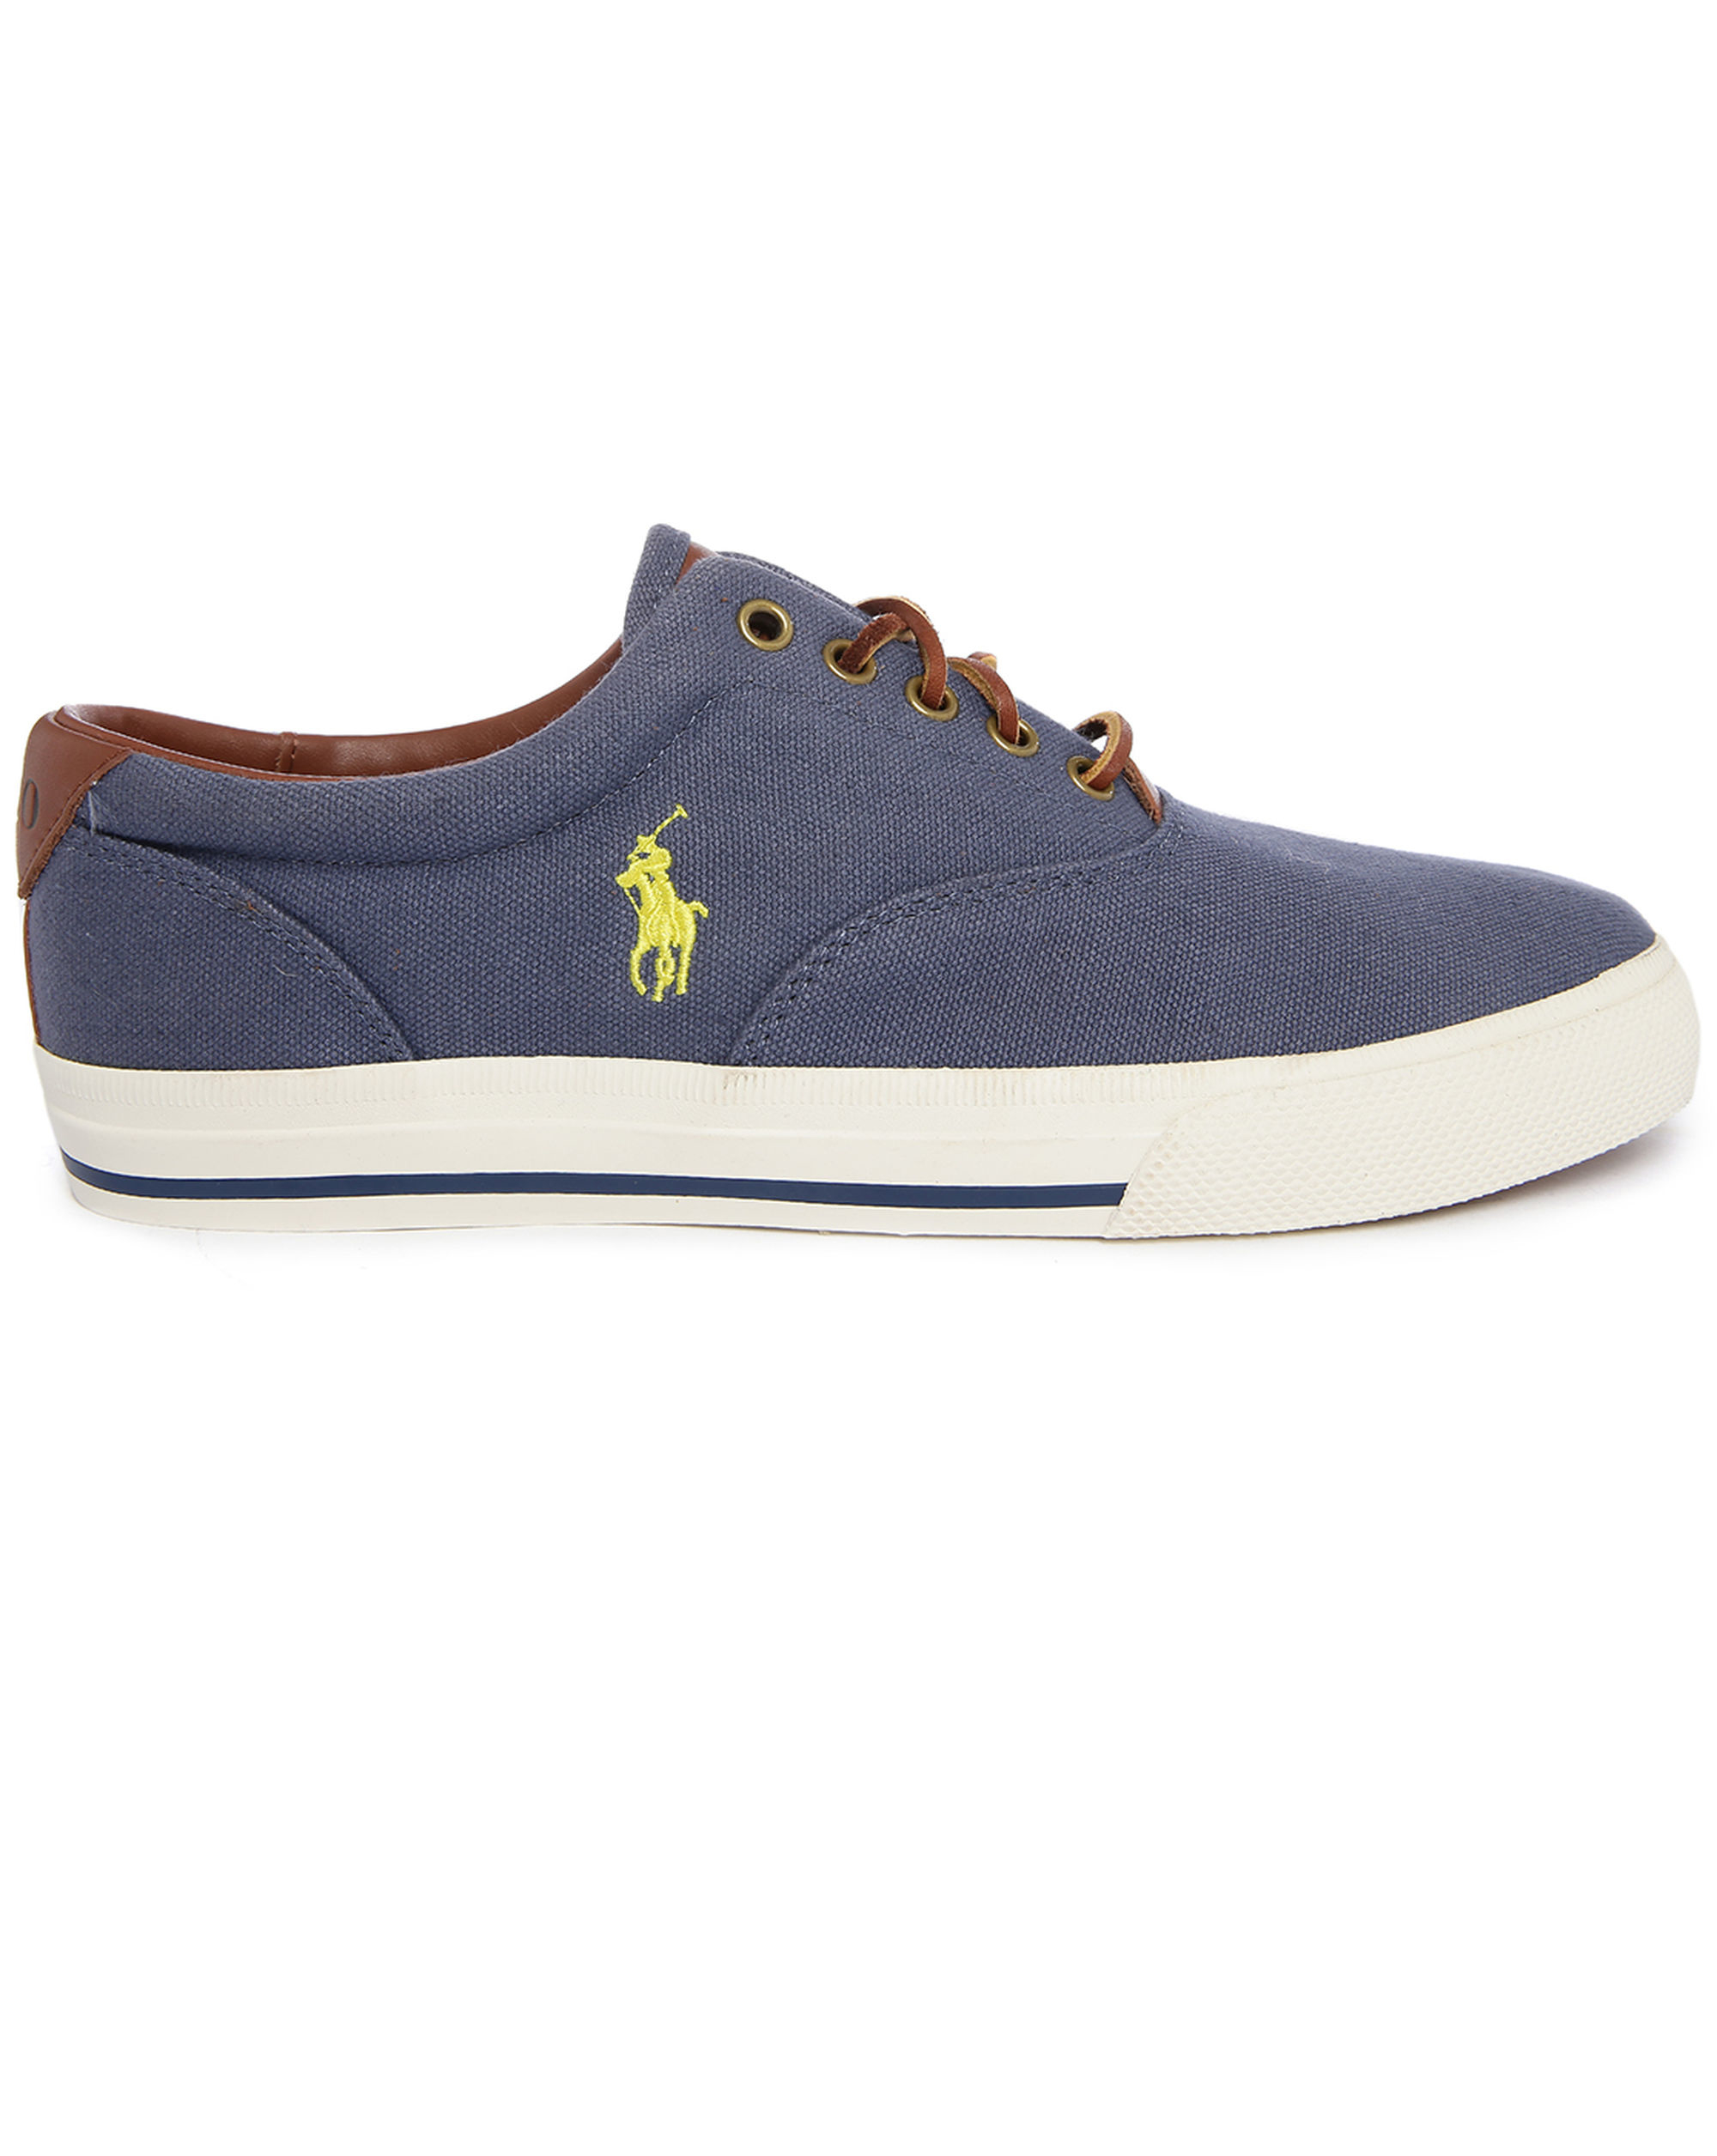 polo ralph lauren vaughn blue canvas sneakers in blue for. Black Bedroom Furniture Sets. Home Design Ideas